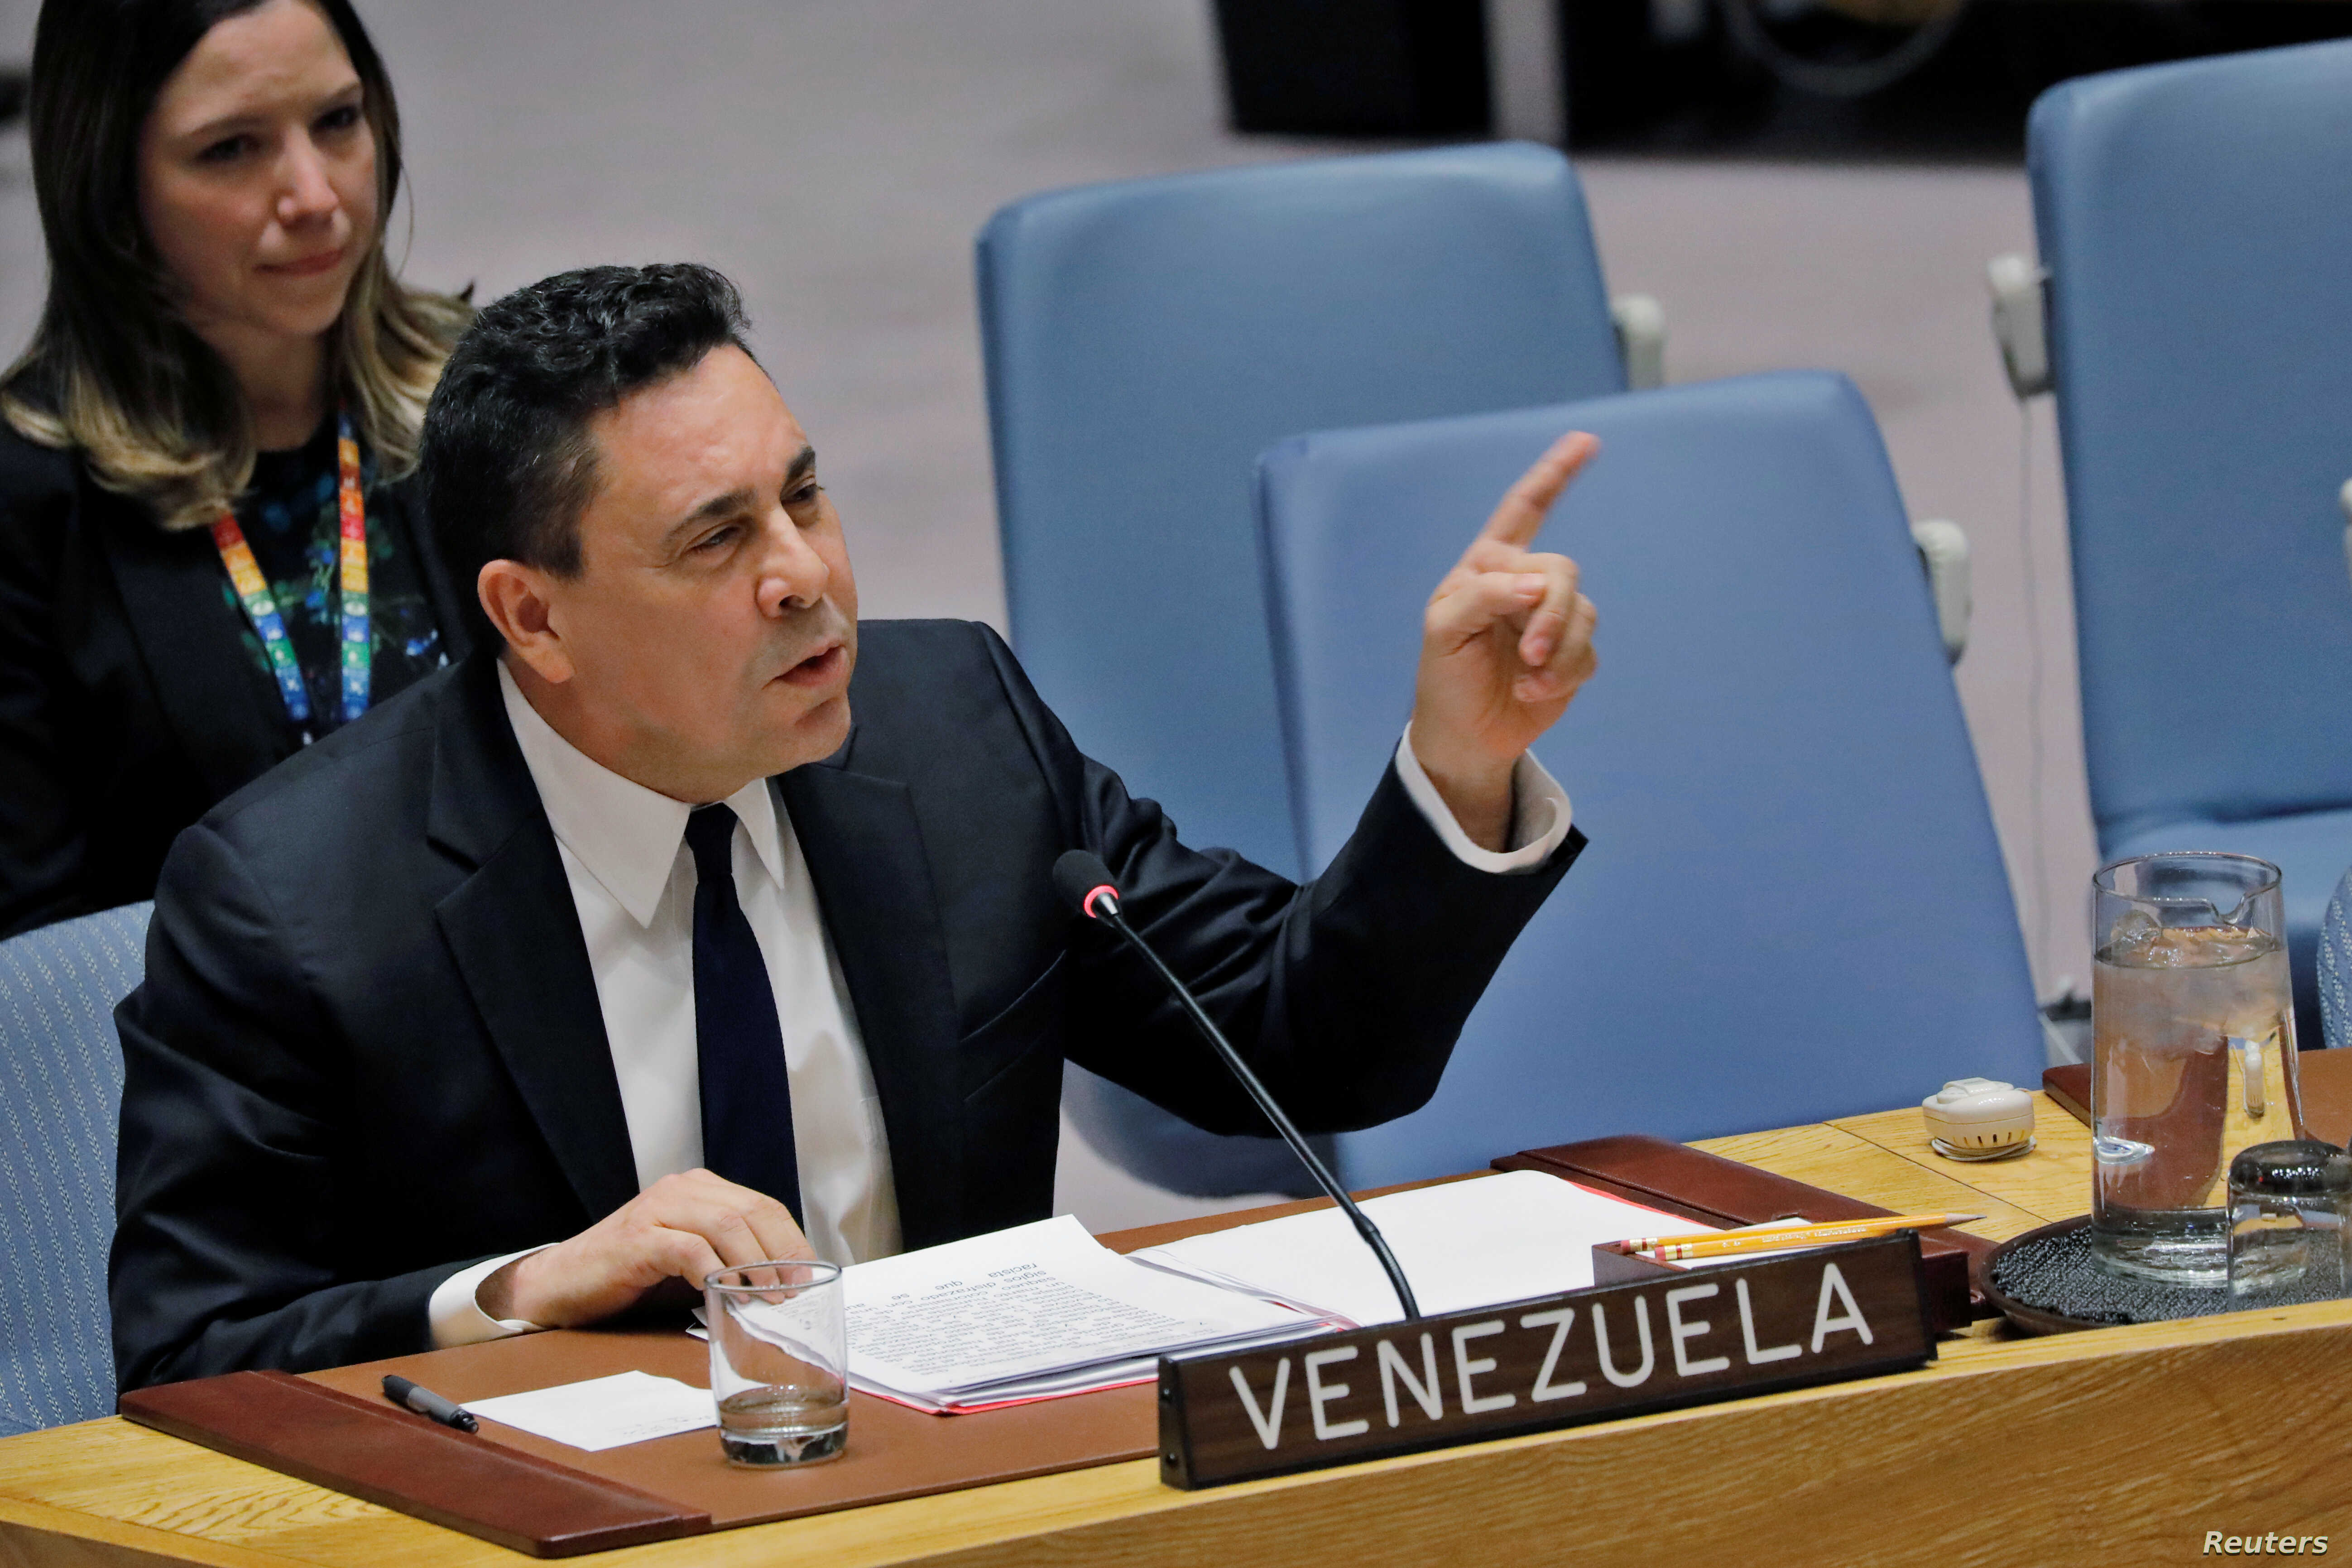 Venezuelan Ambassador to the United Nations Samuel Moncada speaks during a meeting of the U.N. Security Council on Venezuela's electoral and humanitarian problems at U.N. headquarters in New York, Feb. 28, 2019.